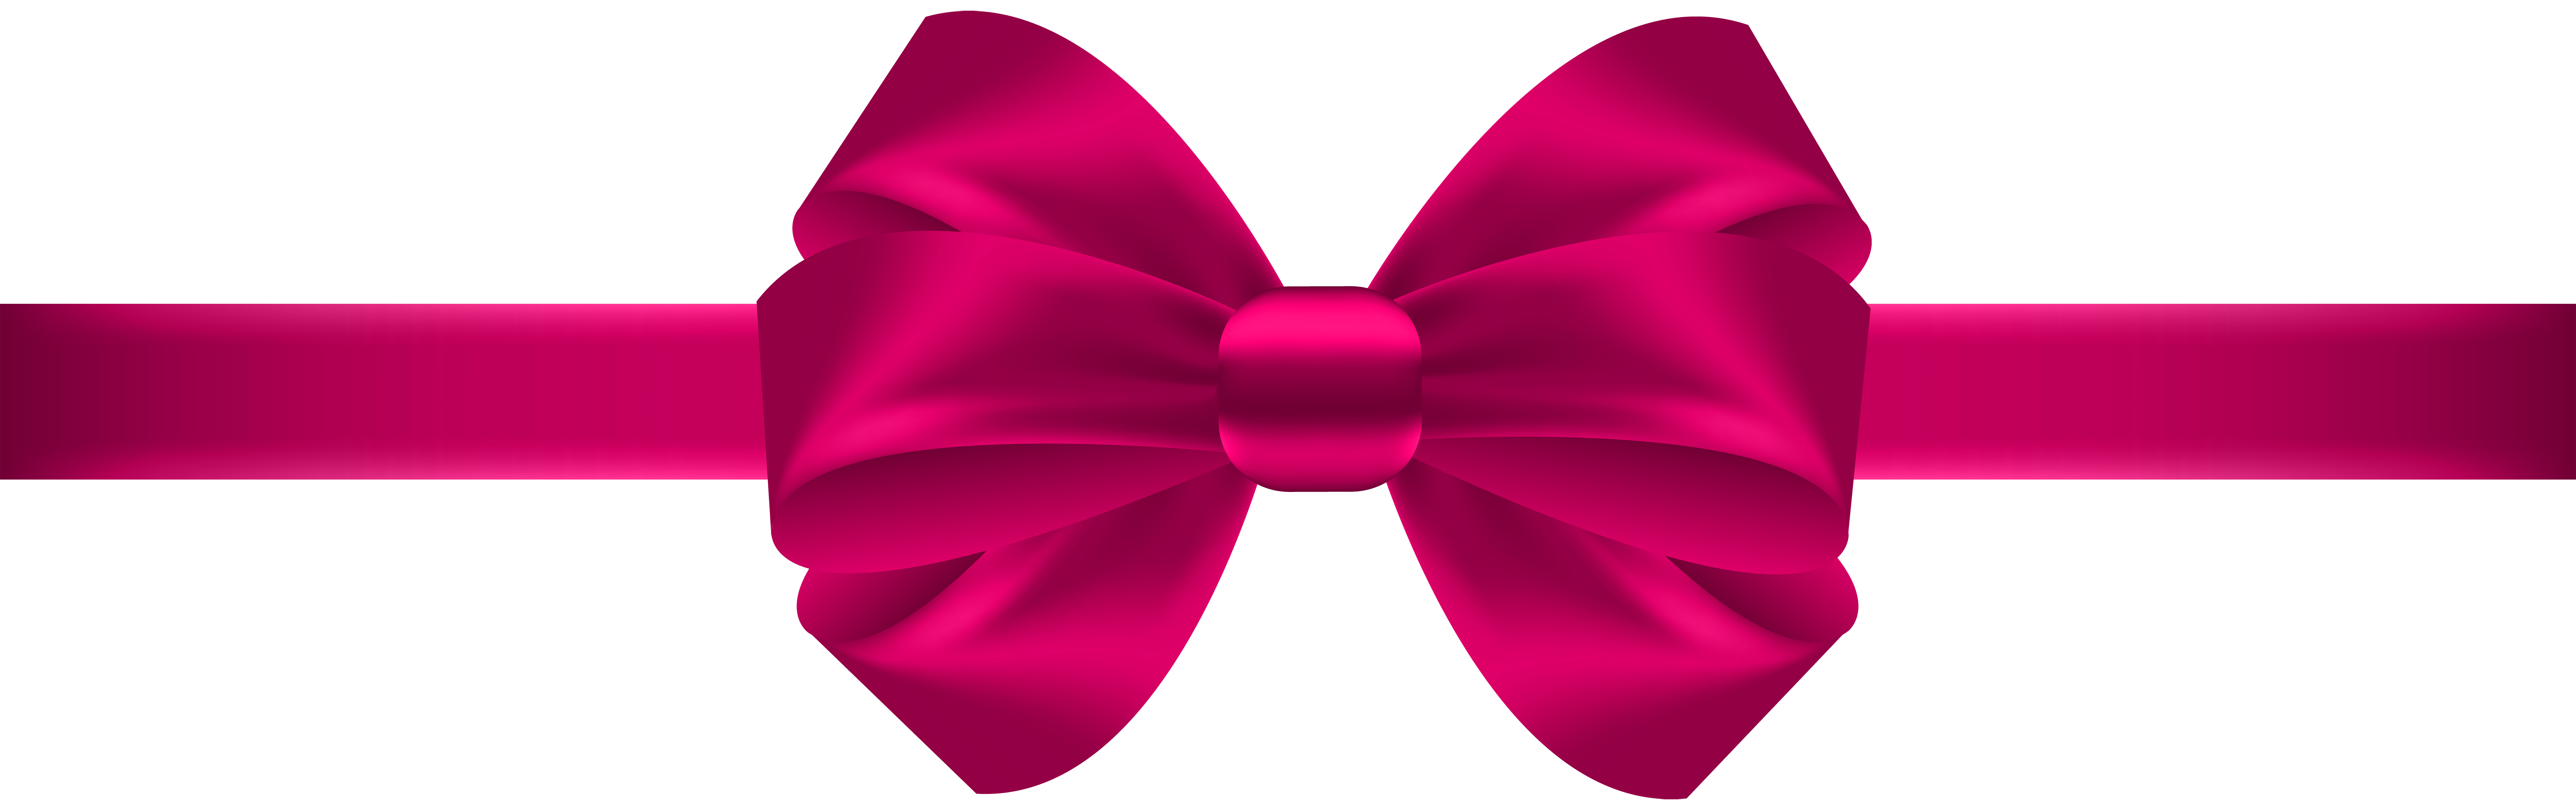 Clipart roses headband. Bow pink transparent png